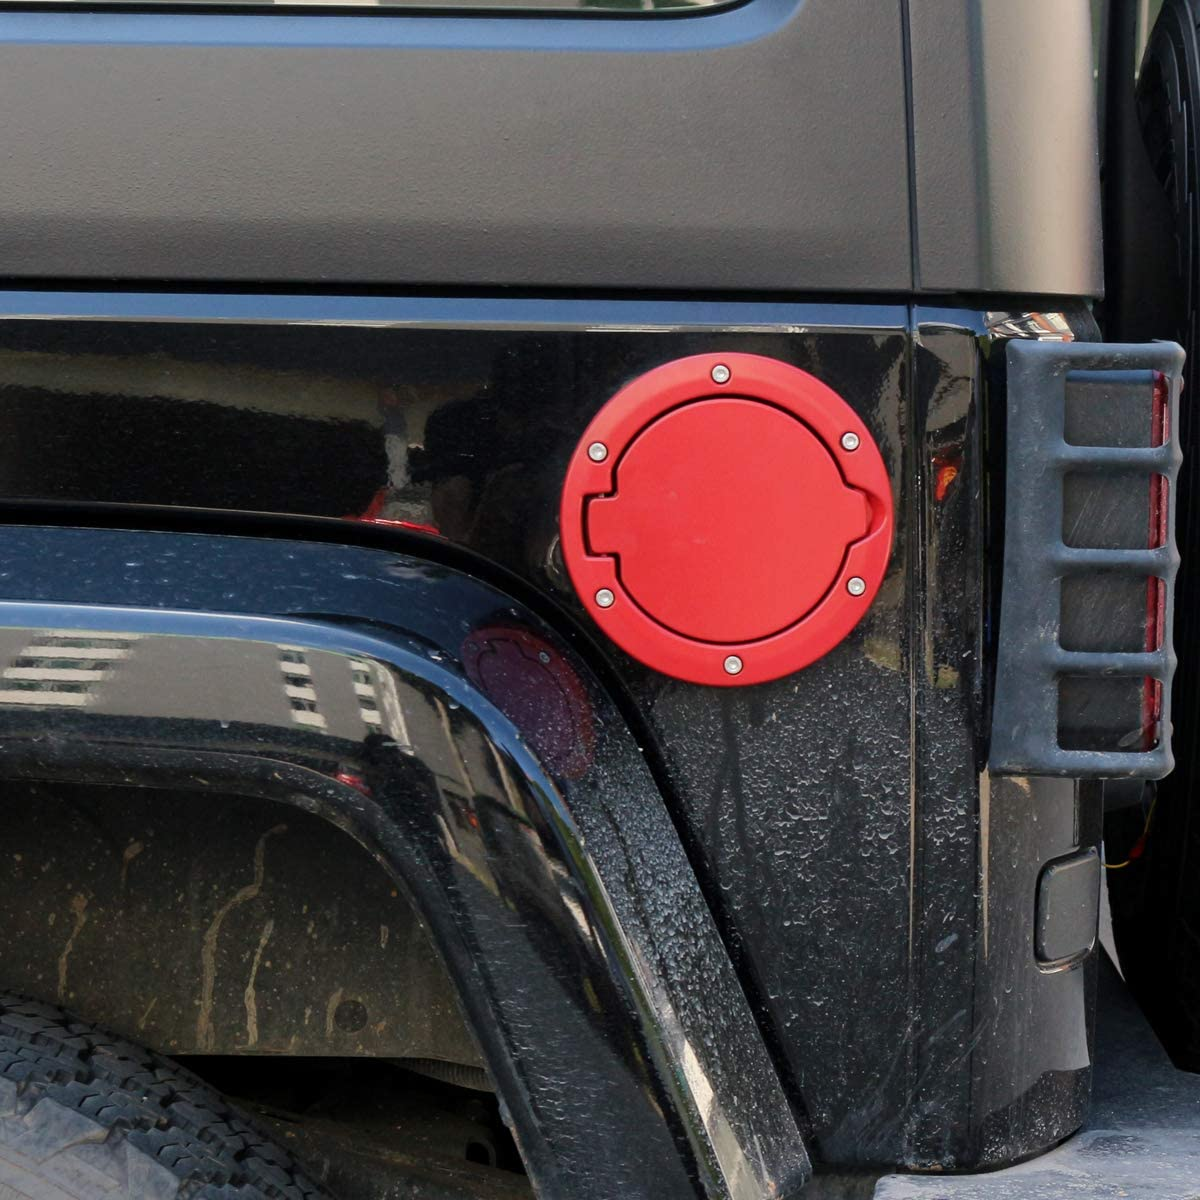 DDUOO Blue Jeep Gas Cap Cover Fuel Gas Door Cover for Jeep Wrangler JK /& Unlimited JK 2007-2017 Sport Sahara Rubicon